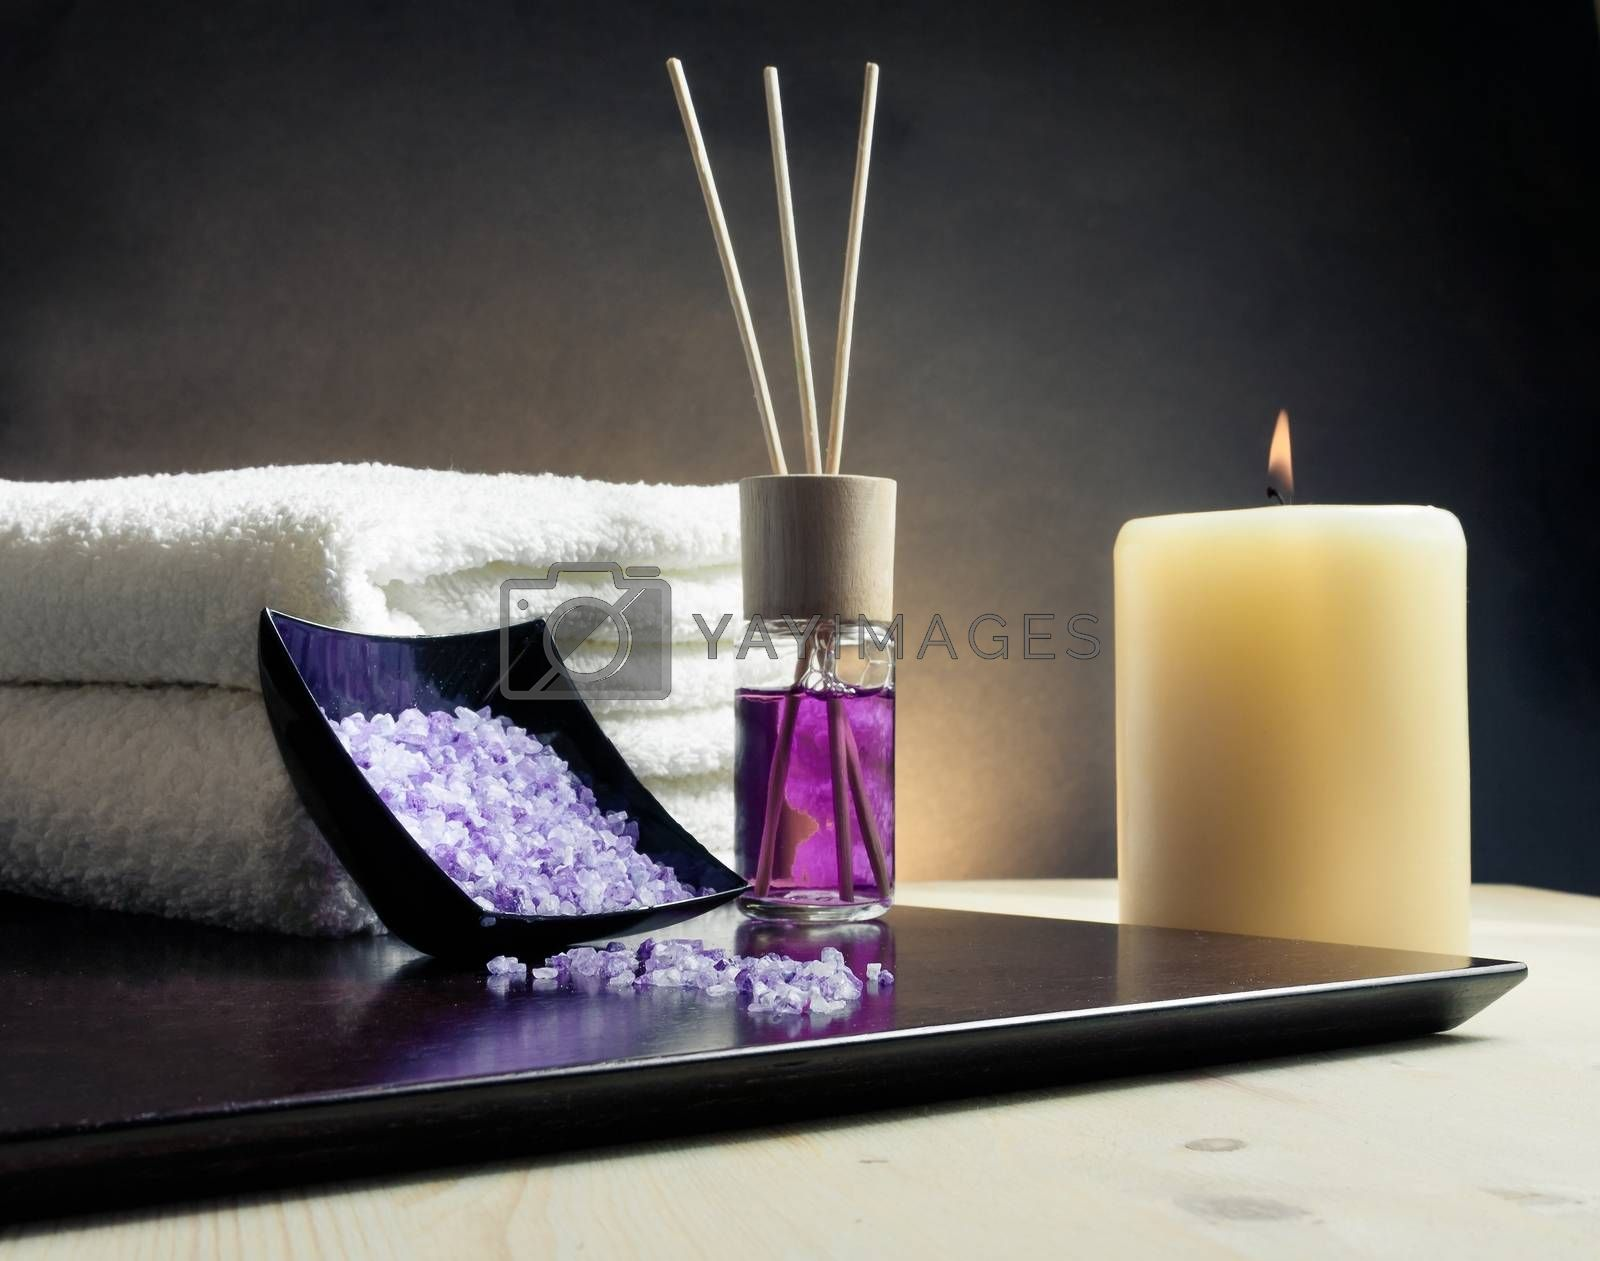 Spa massage border background with towel stacked, perfume diffuser and sea salt by donfiore